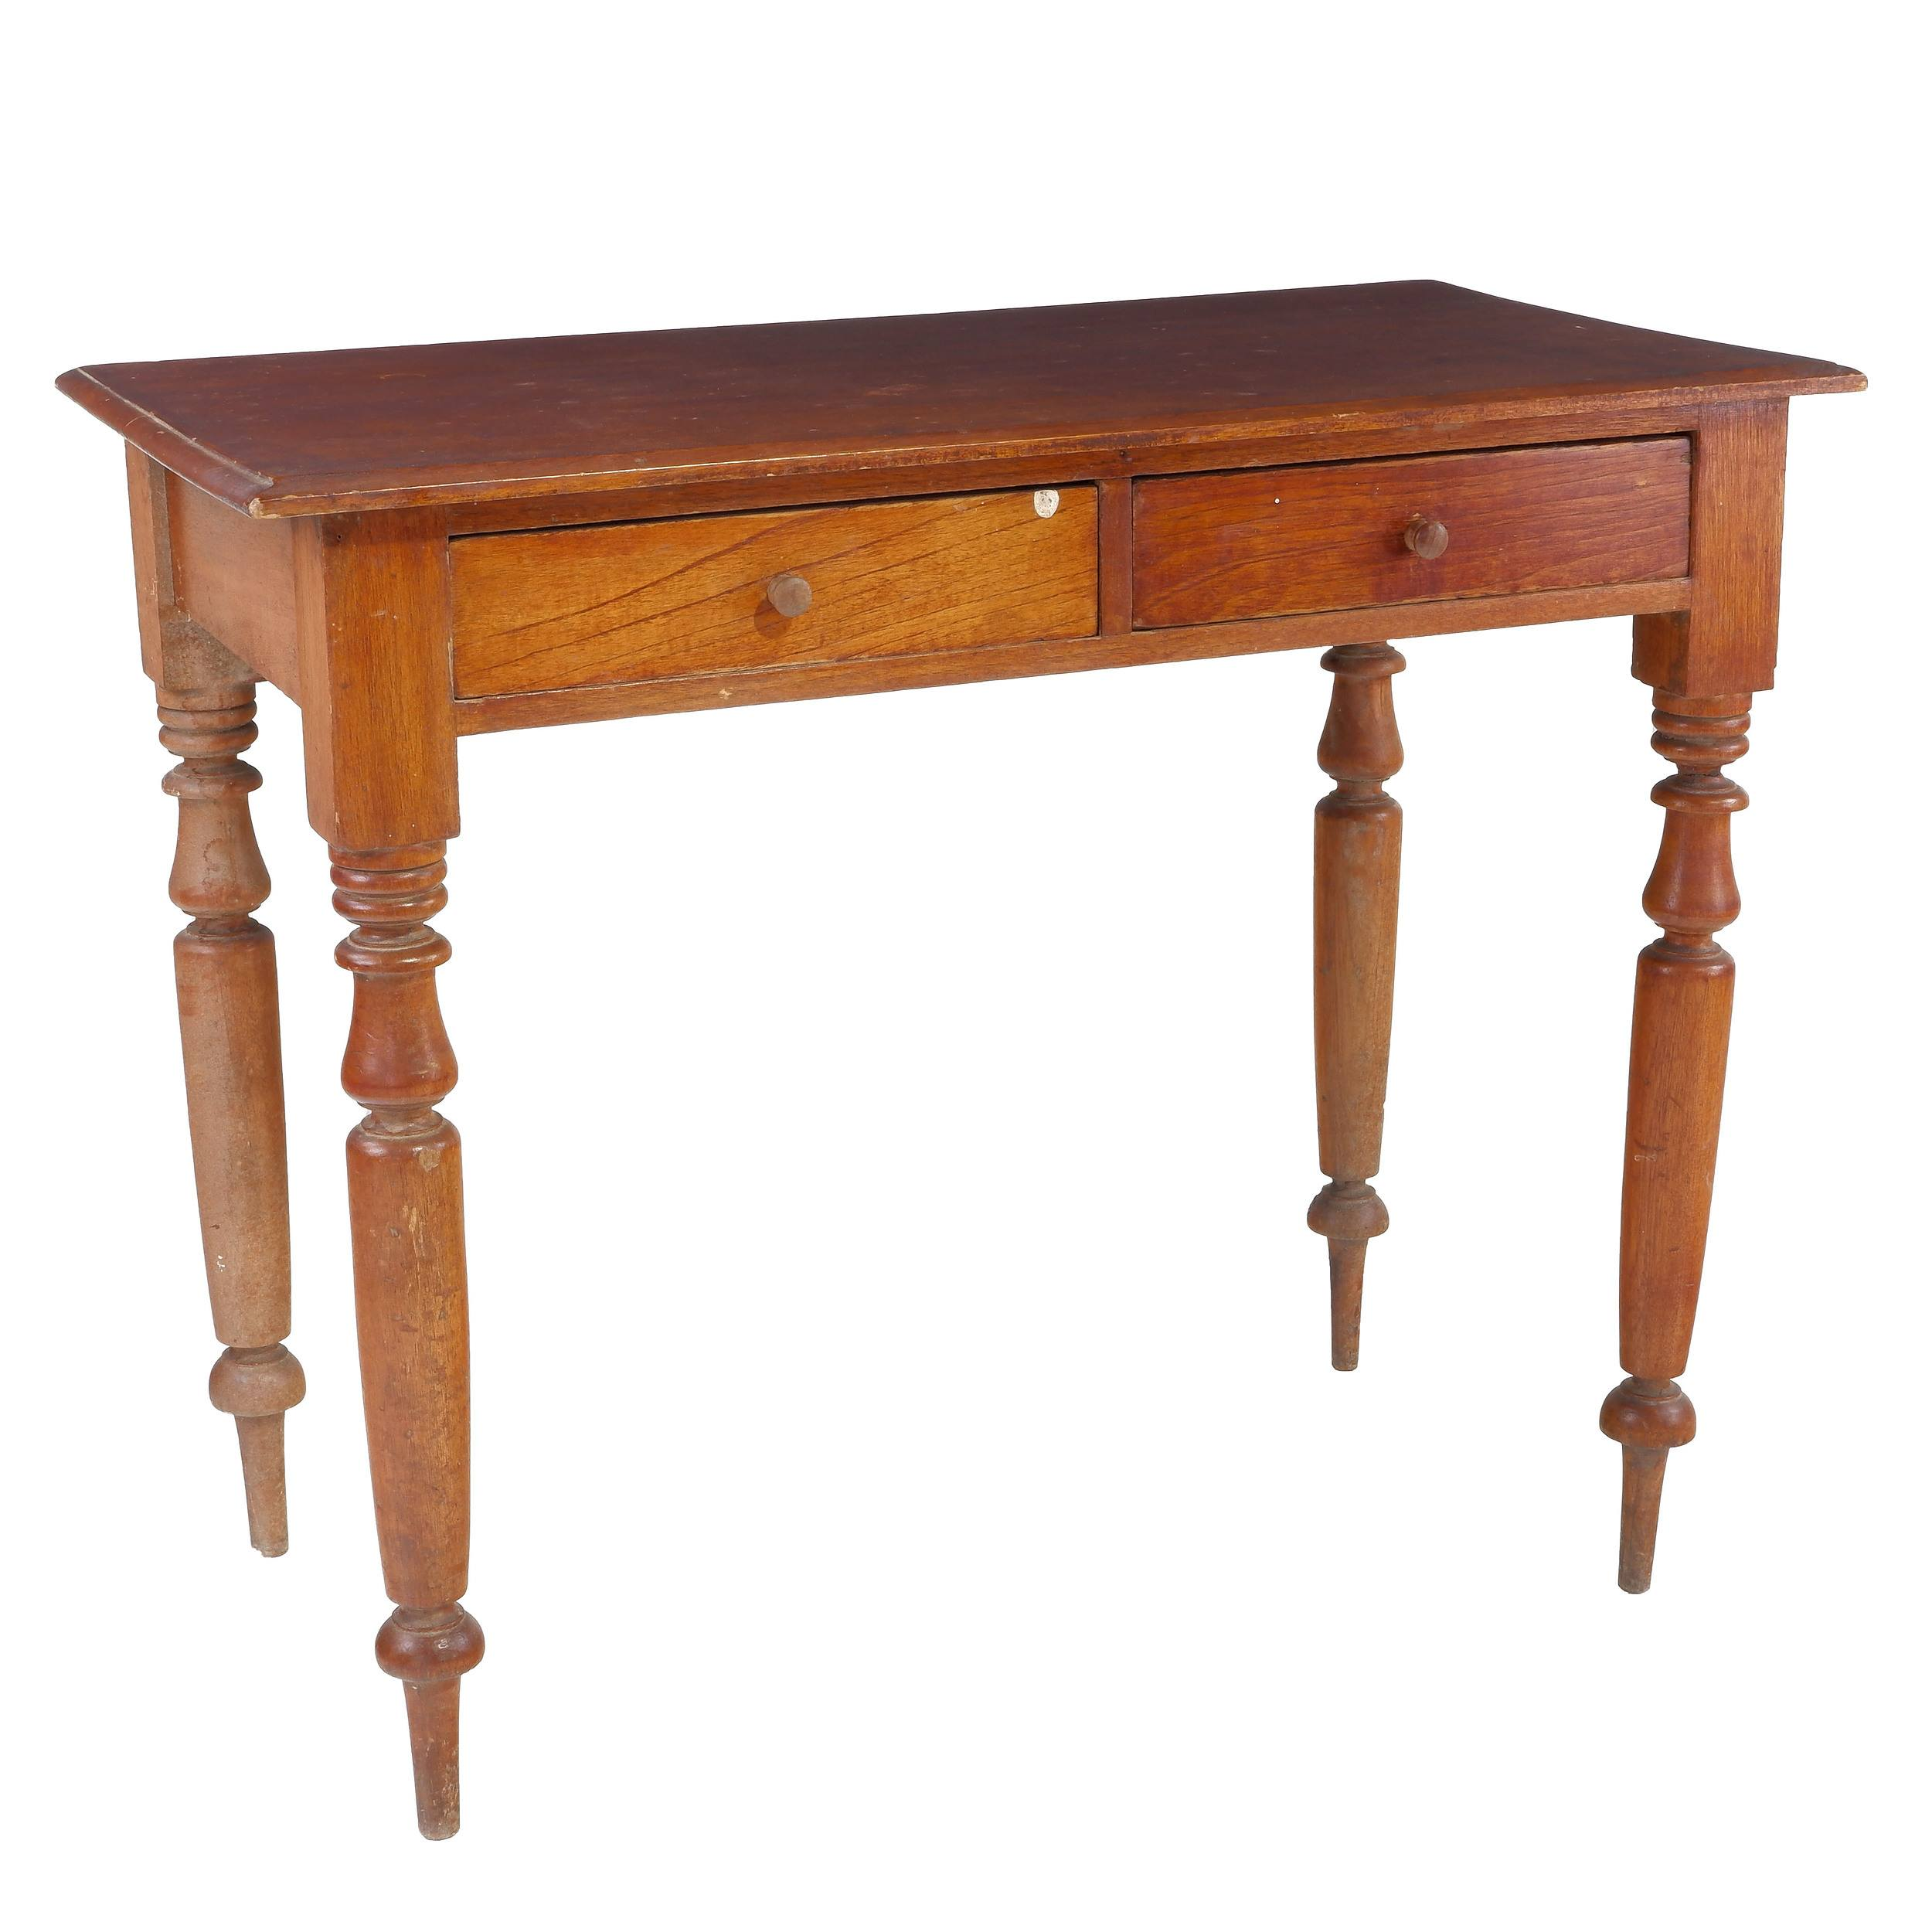 'Australian Cedar Hall Table'